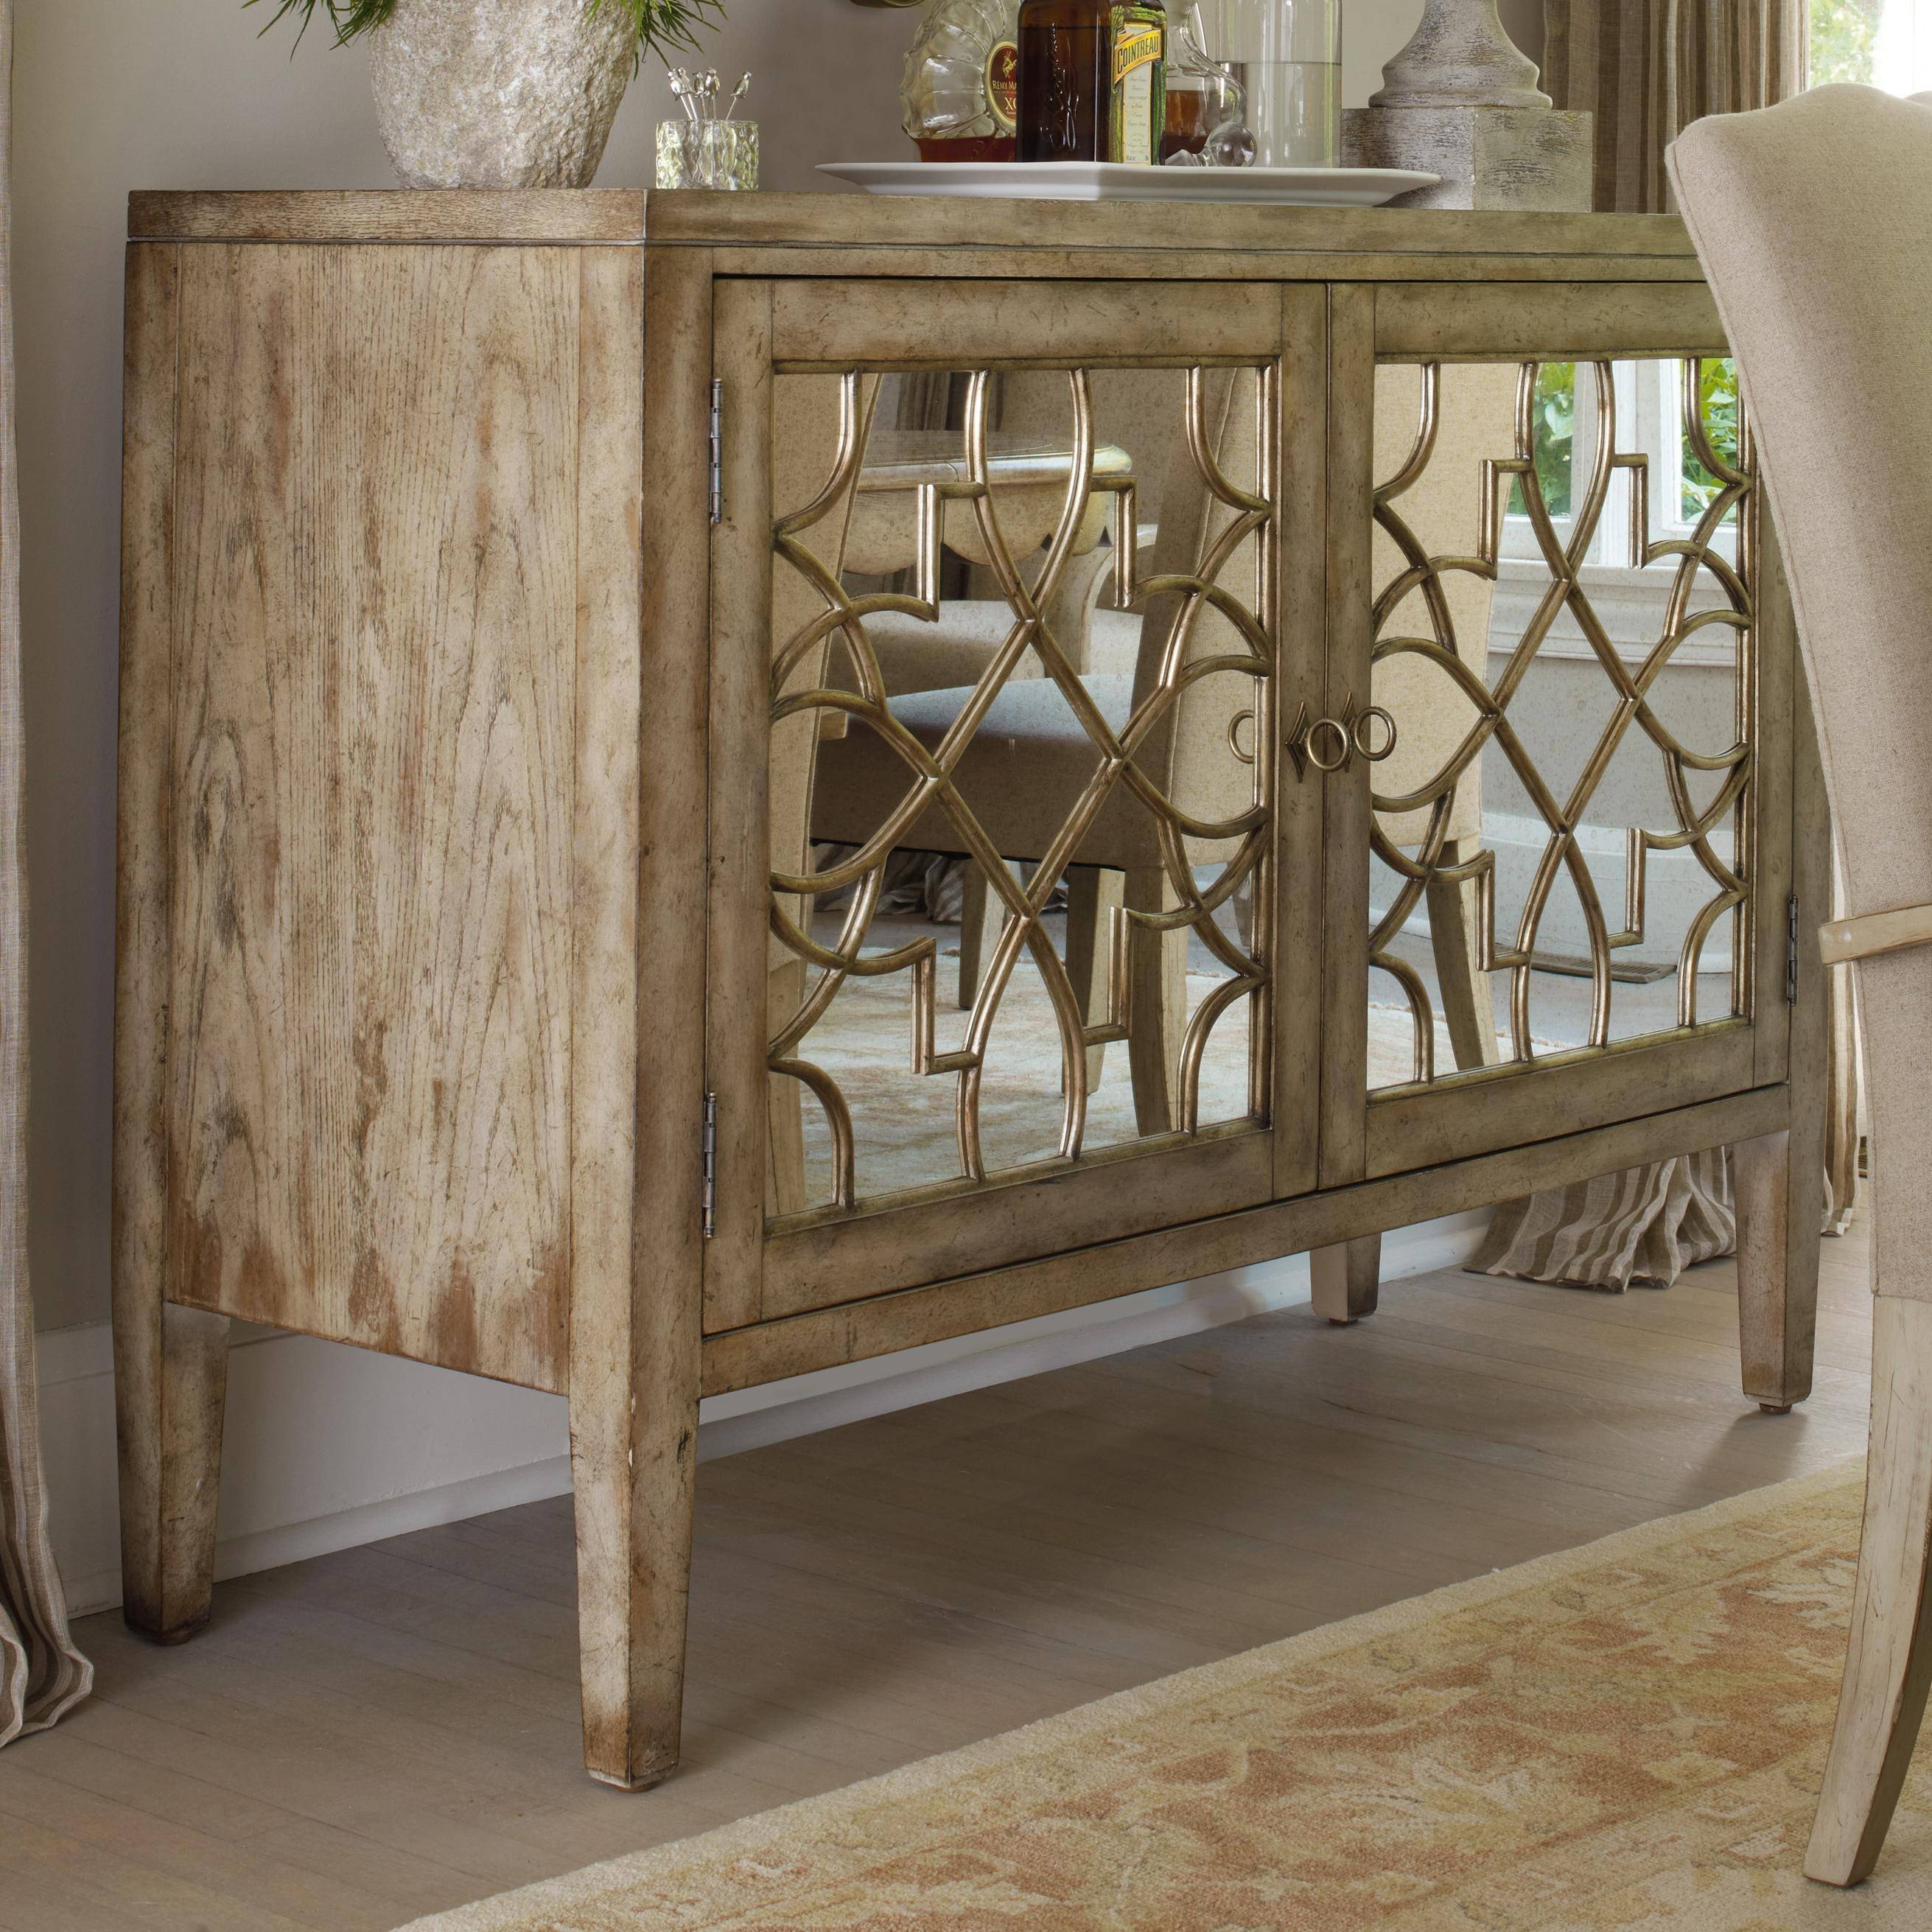 Hooker Furniture Sanctuary Two Door Mirrored Console – Ahfa Regarding Mirrored Sideboards Furniture (View 4 of 15)